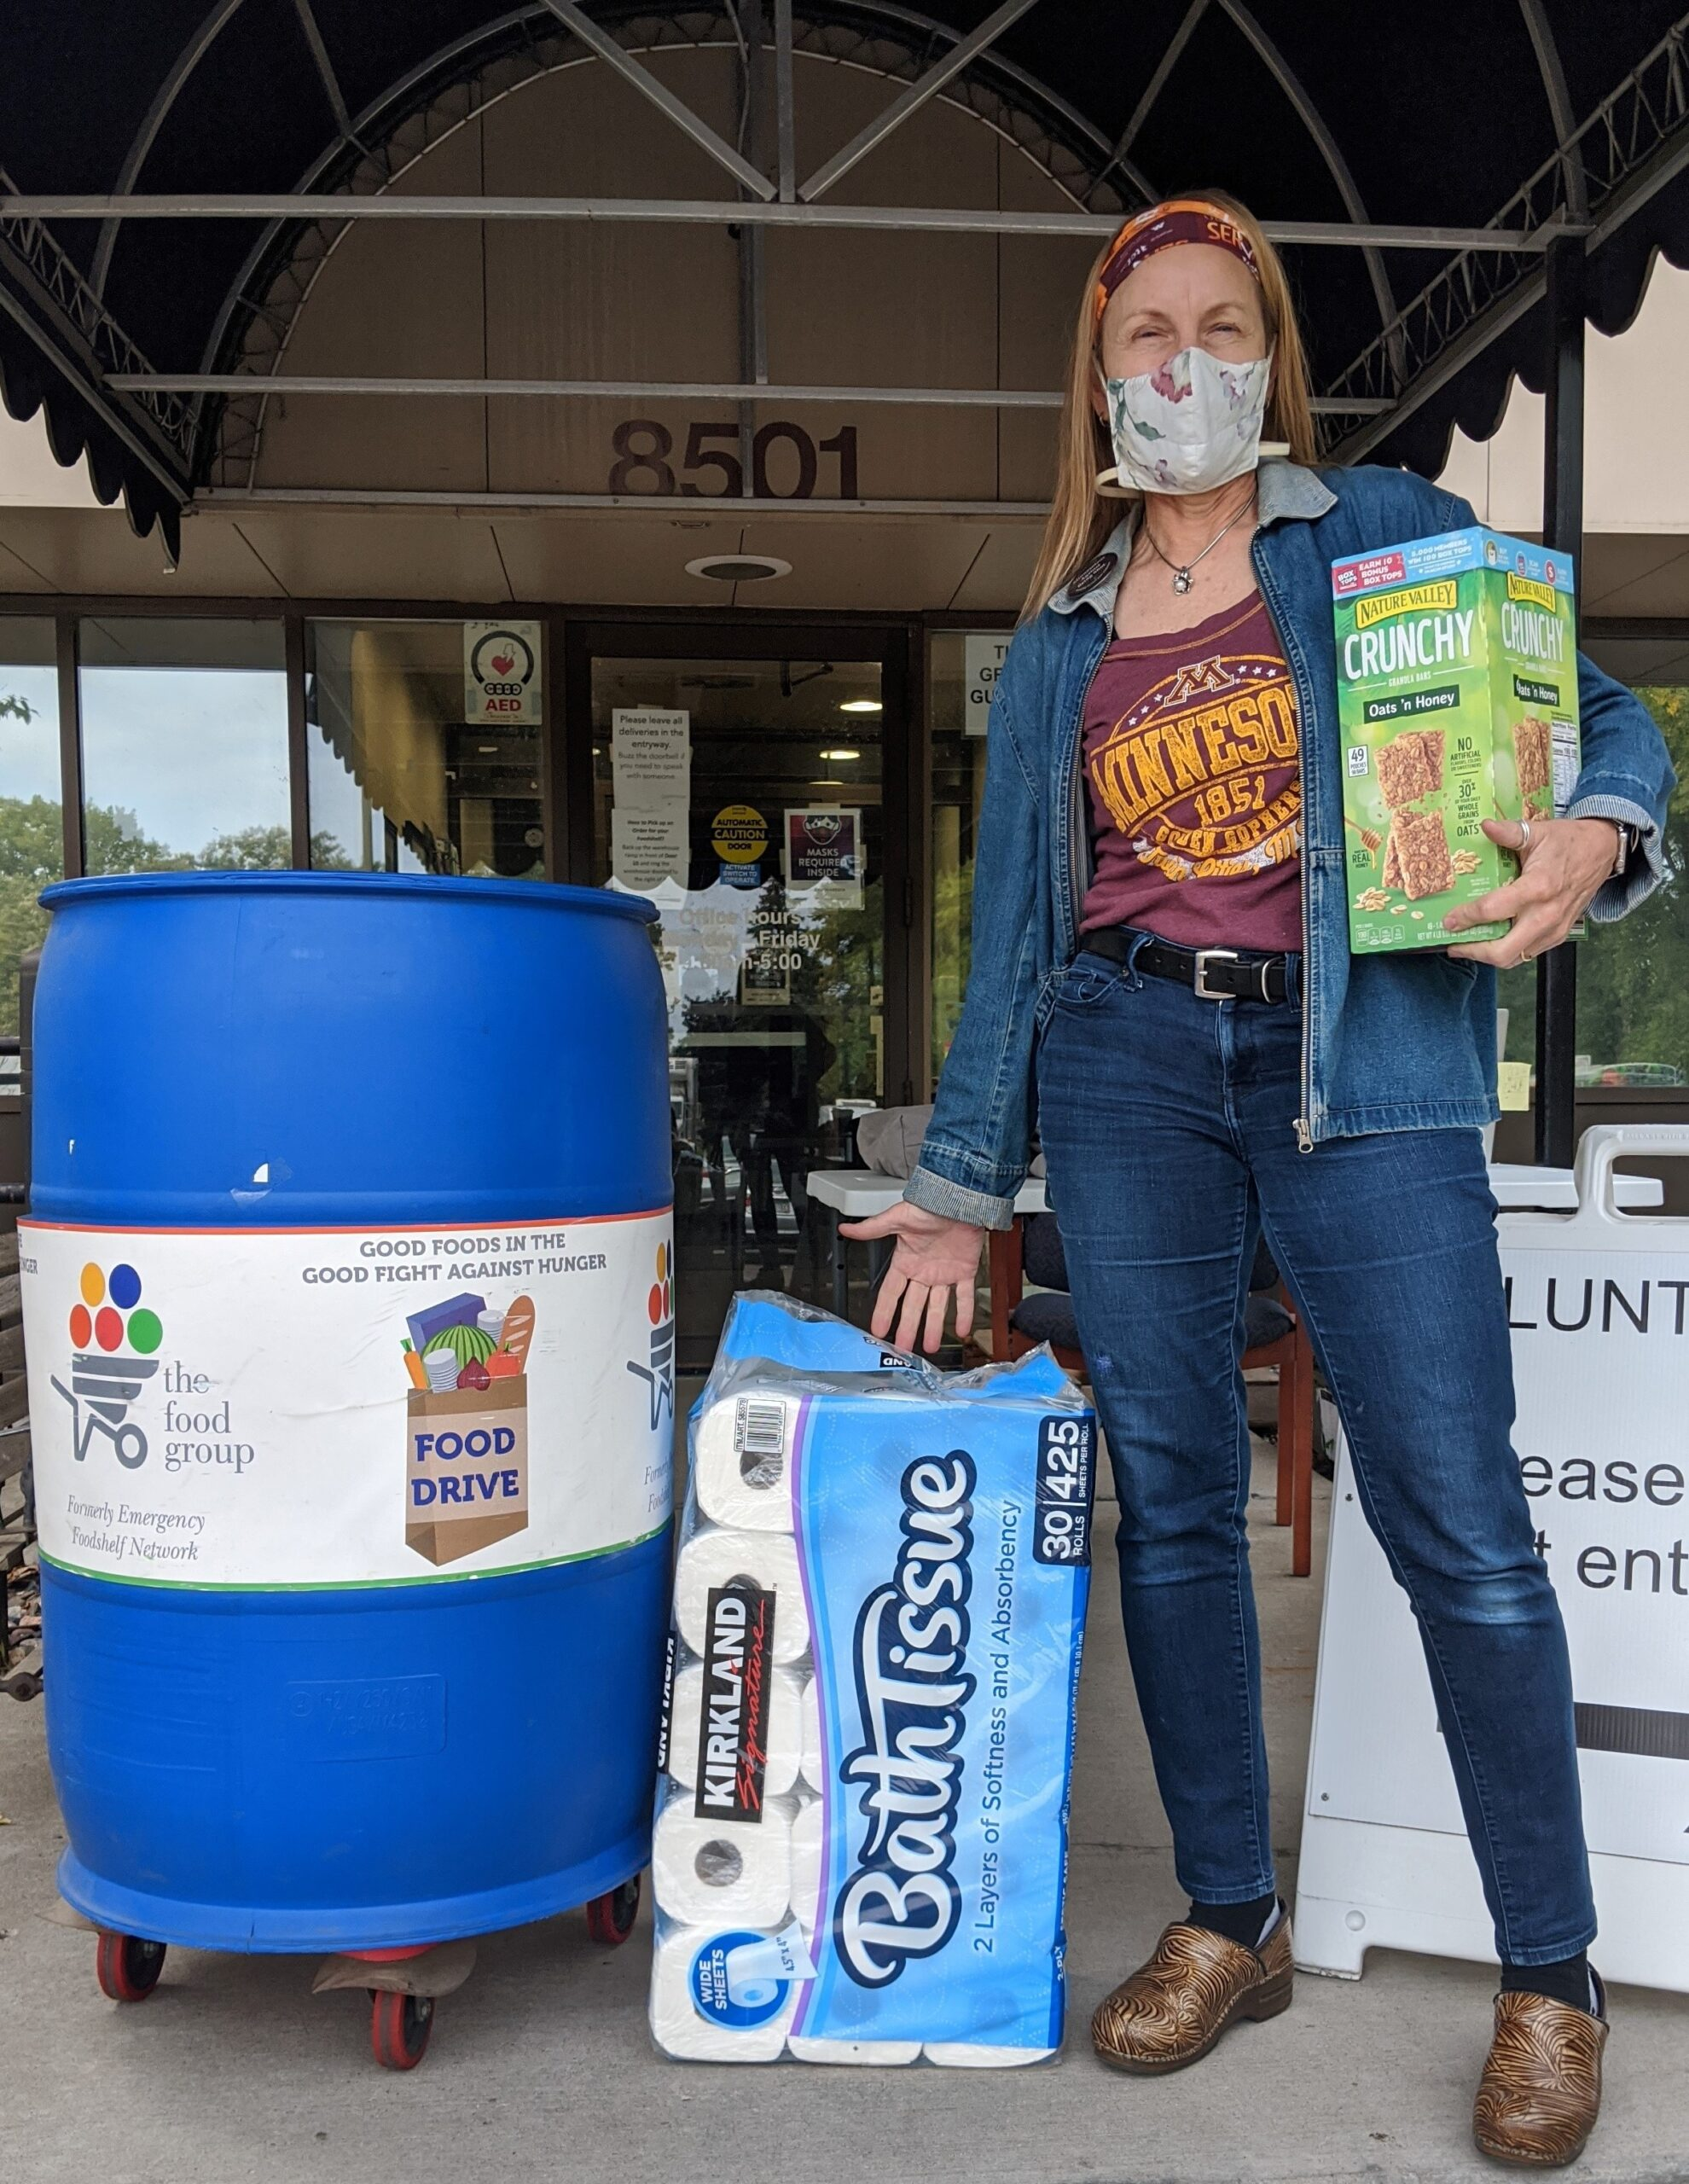 Woman standing in front of food drive collection bins, holding toilet paper and granola bars